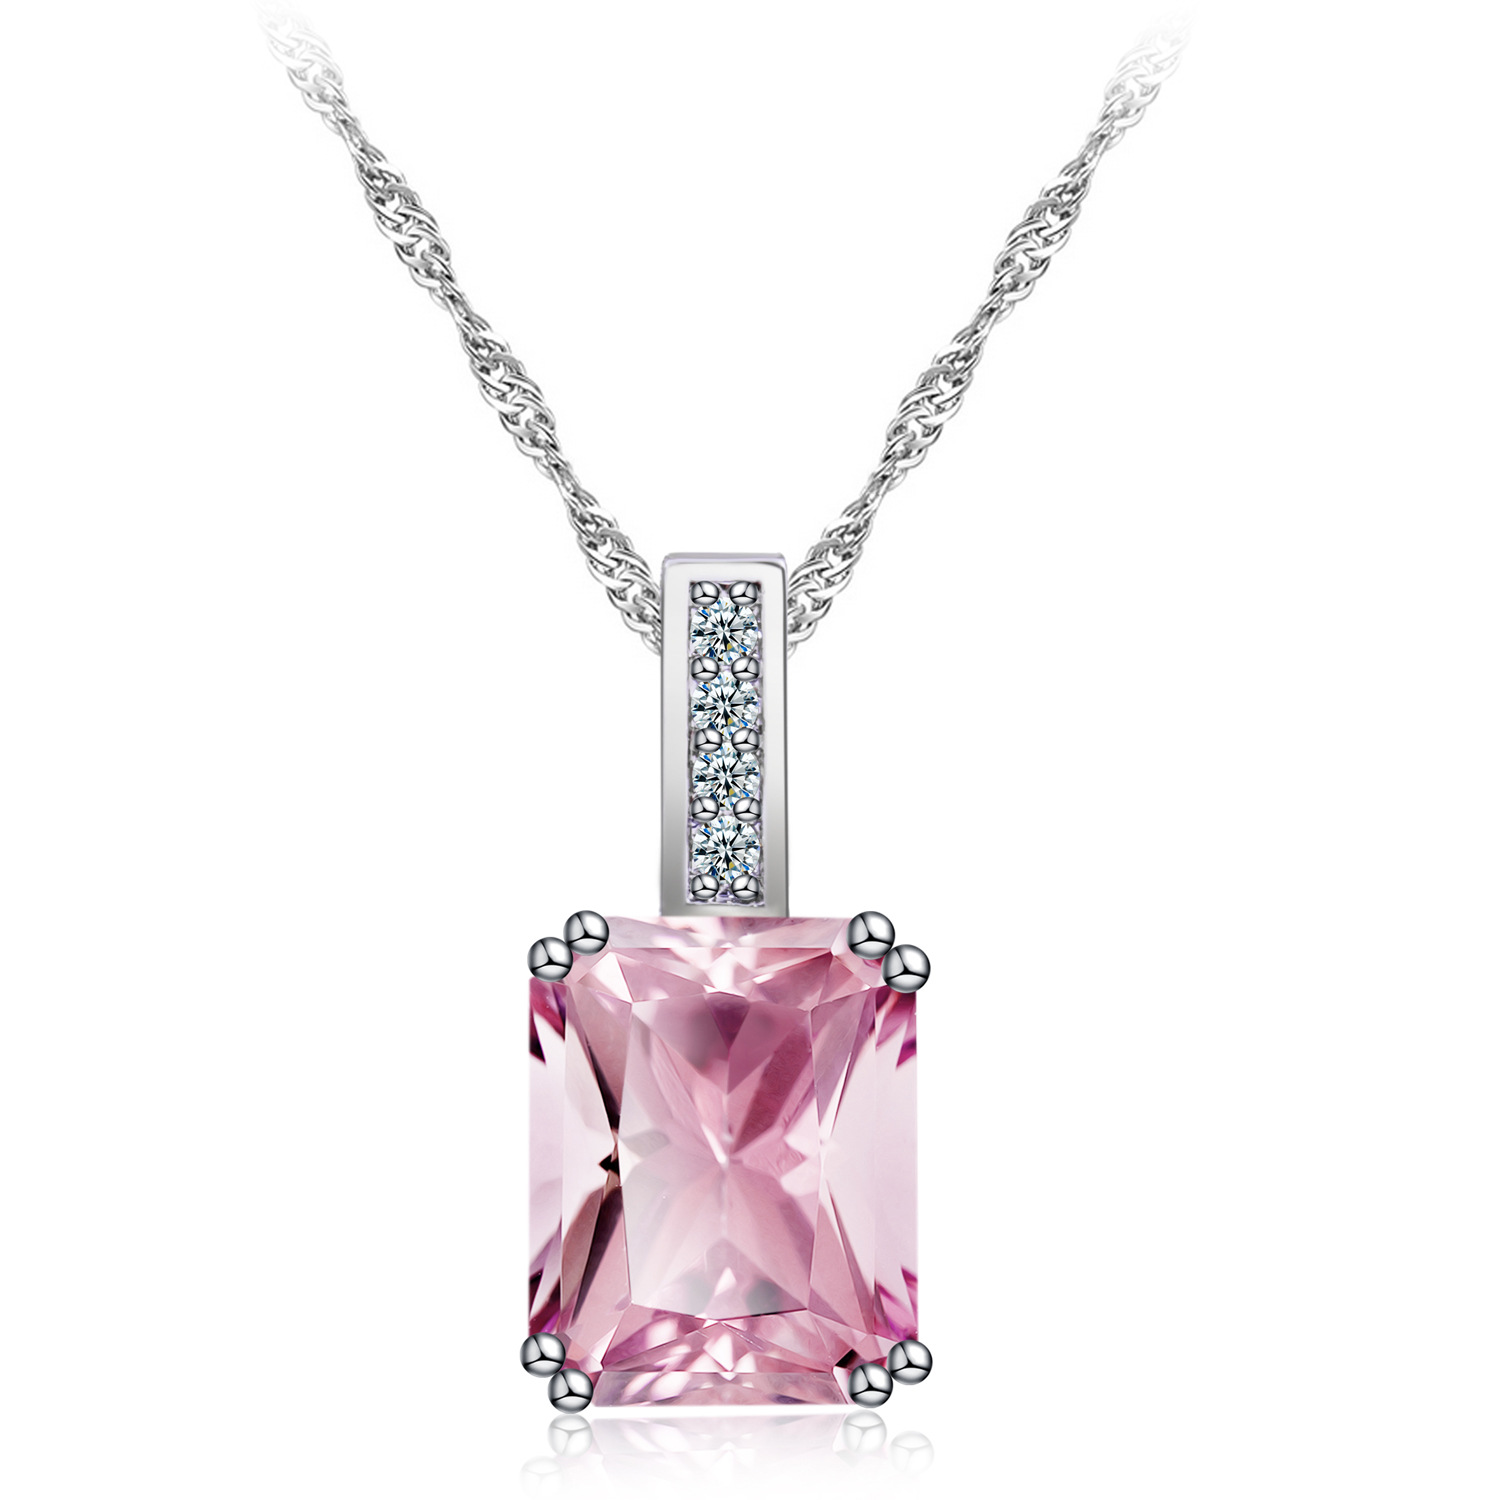 Korean Style Necklace Ornament Pink Party Zirconium Necklace Foreign Trade Hot Sales Accessories Necklace Manufacturers Wholesal